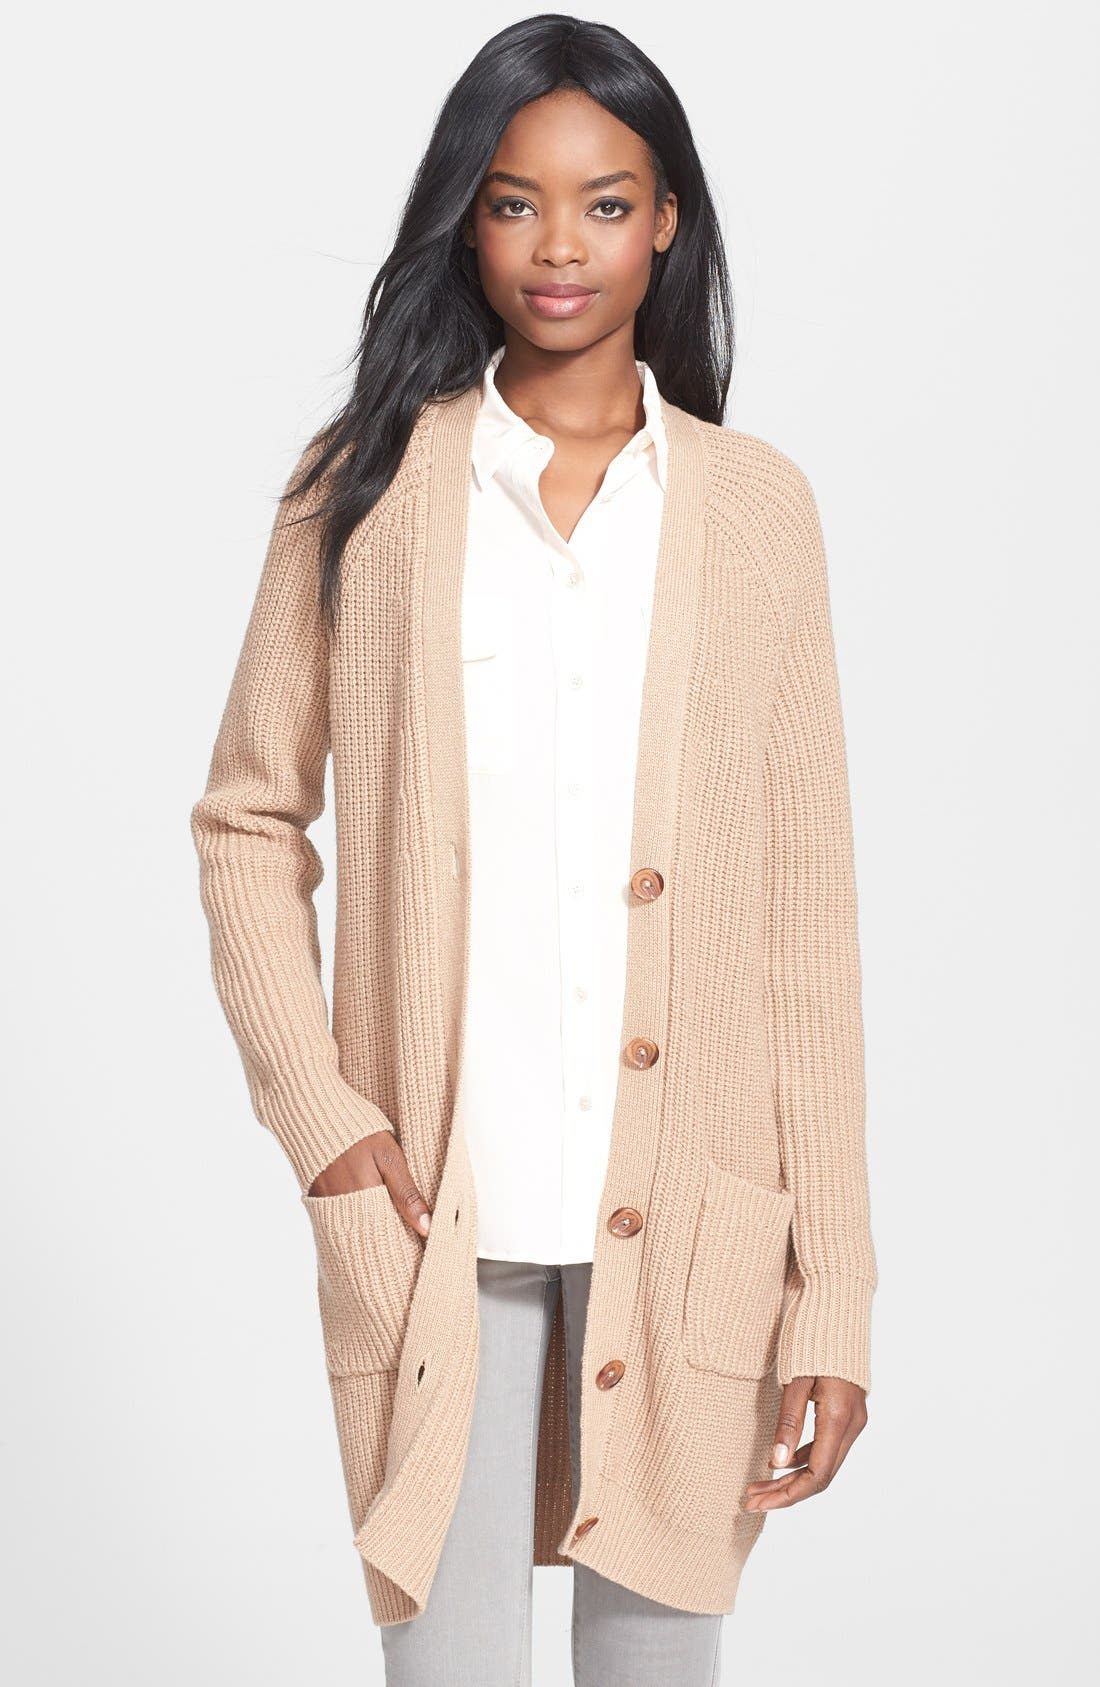 Main Image - Equipment 'Kathy' Wool & Cashmere Cardigan